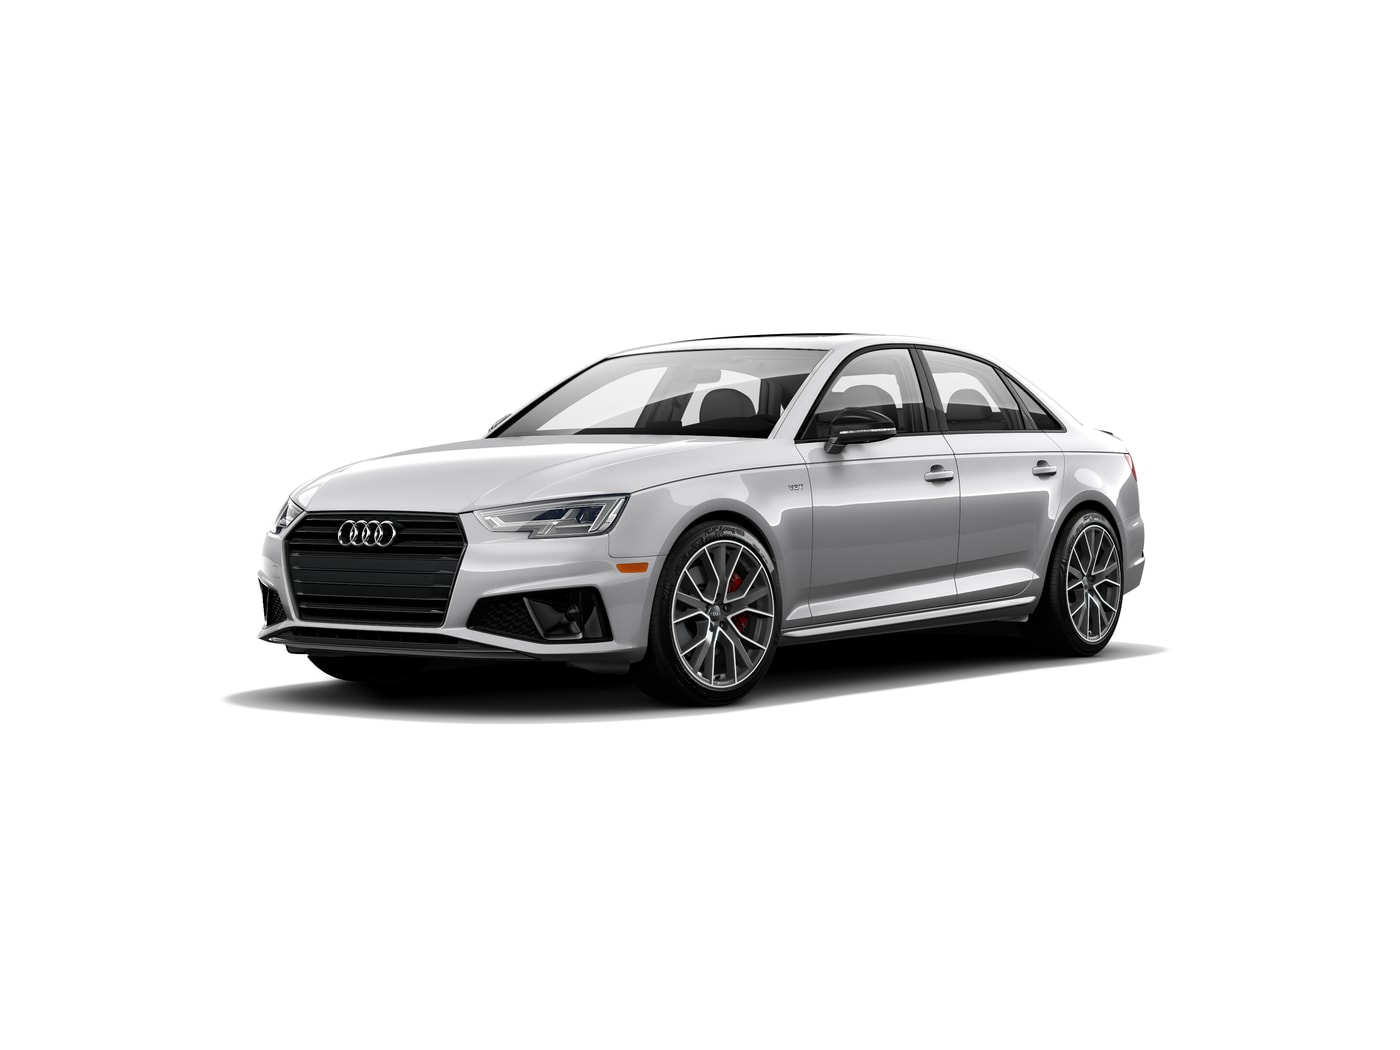 2019 Audi A4 vs. 2019 Honda Civic